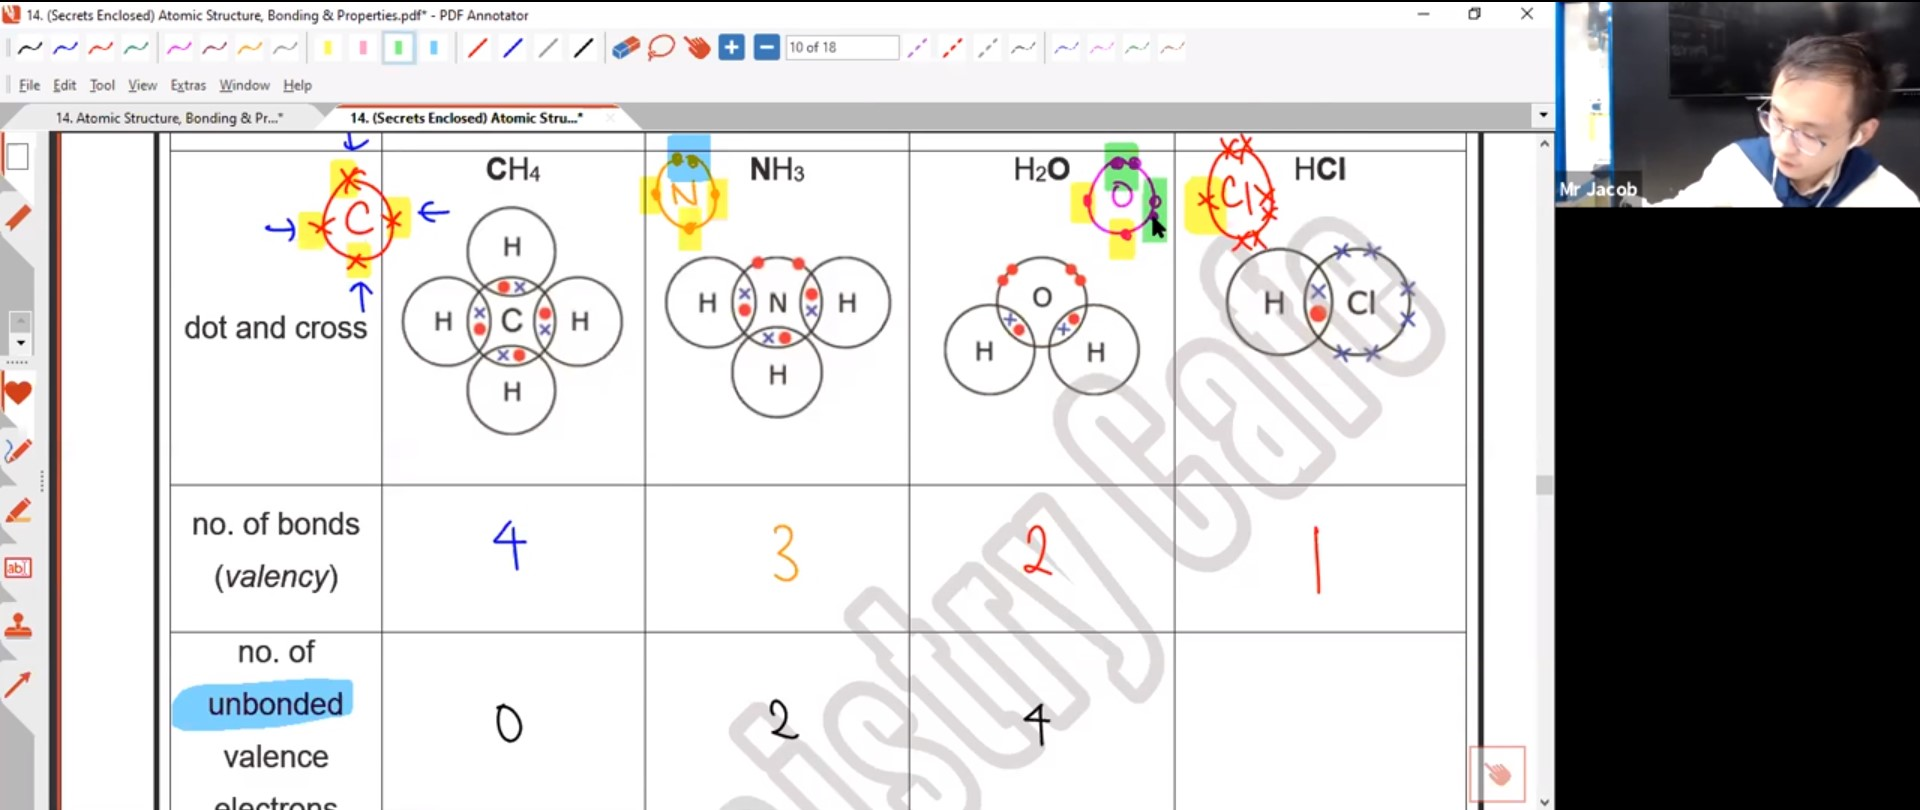 25. EOY - Atomic Structure, Chem Bonding & Structure of Matter 2